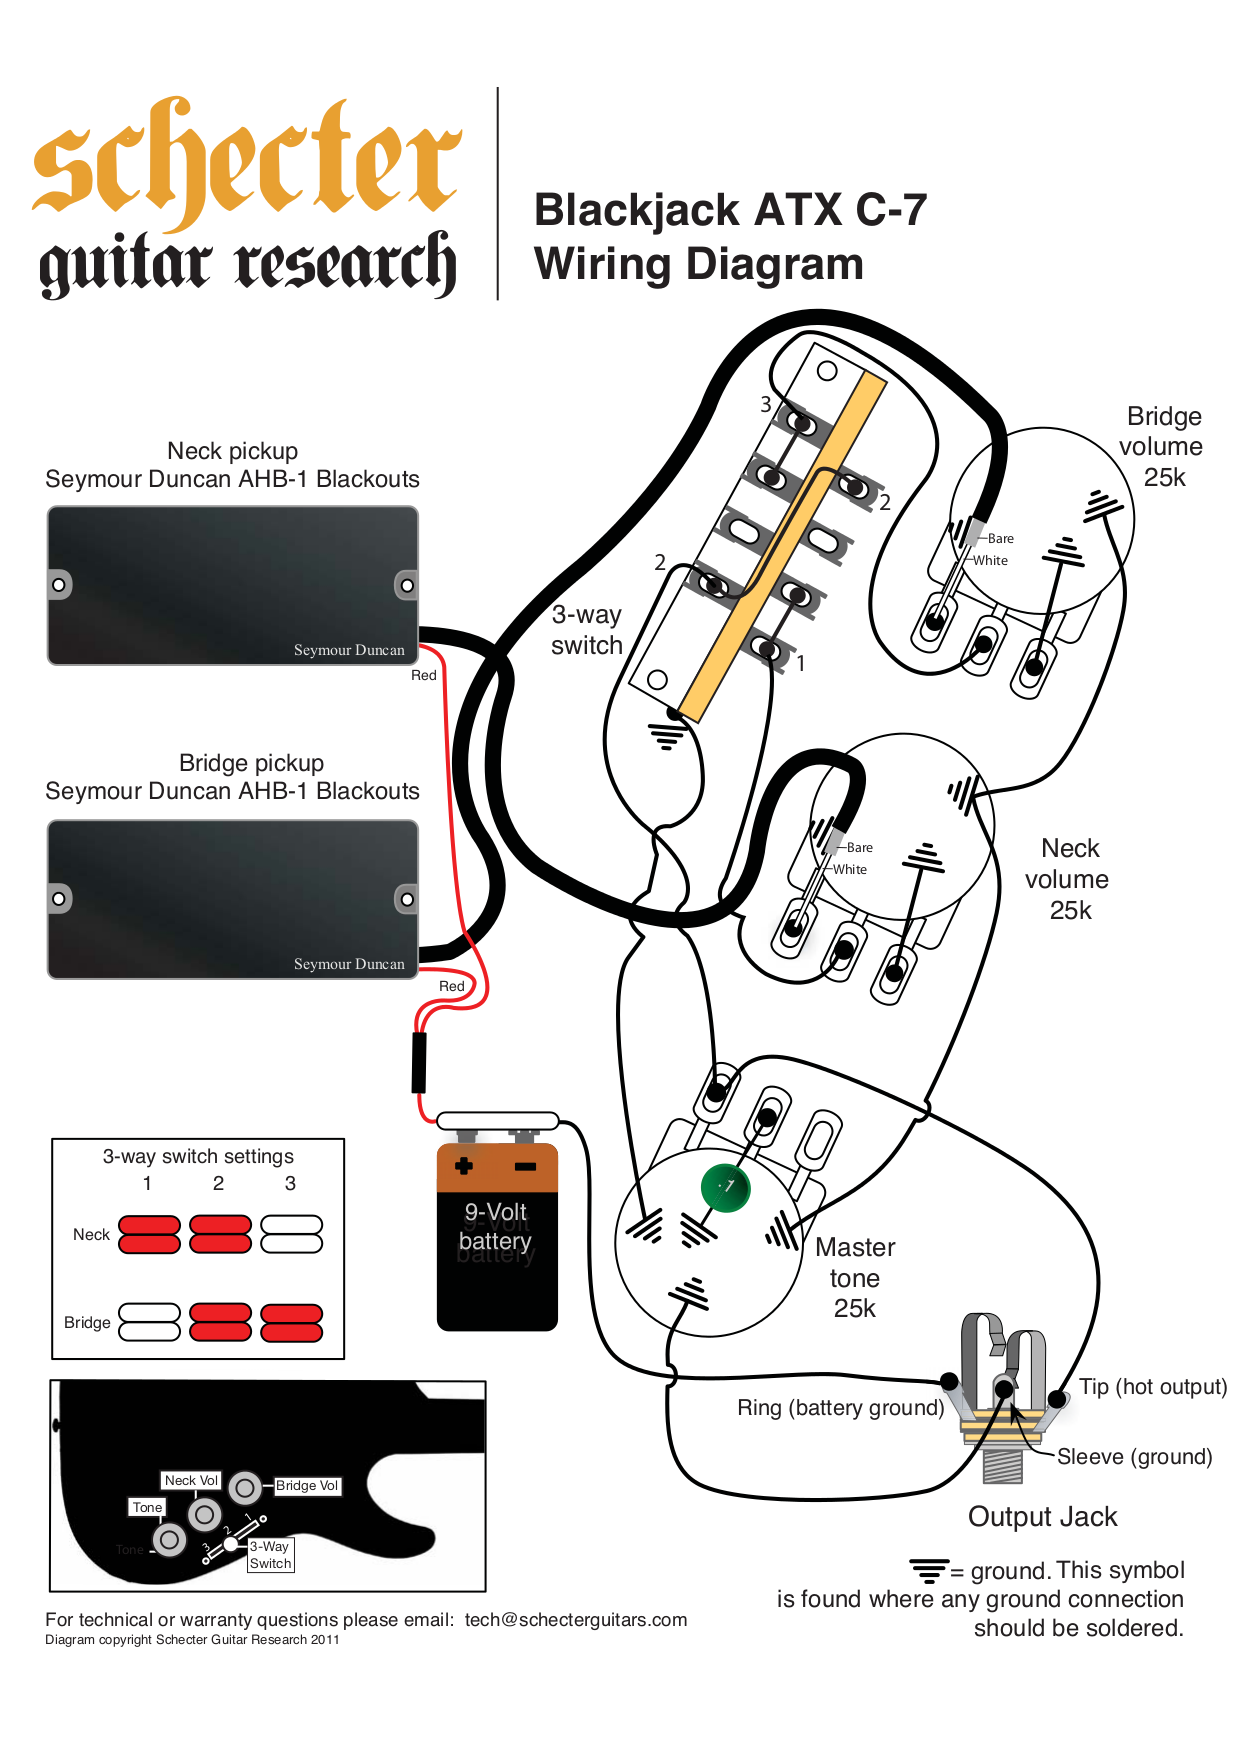 download free pdf for schecter blackjack atx c 1 guitar manual EMG Guitar Wiring Diagrams BlackJack 20ATX 20C 7